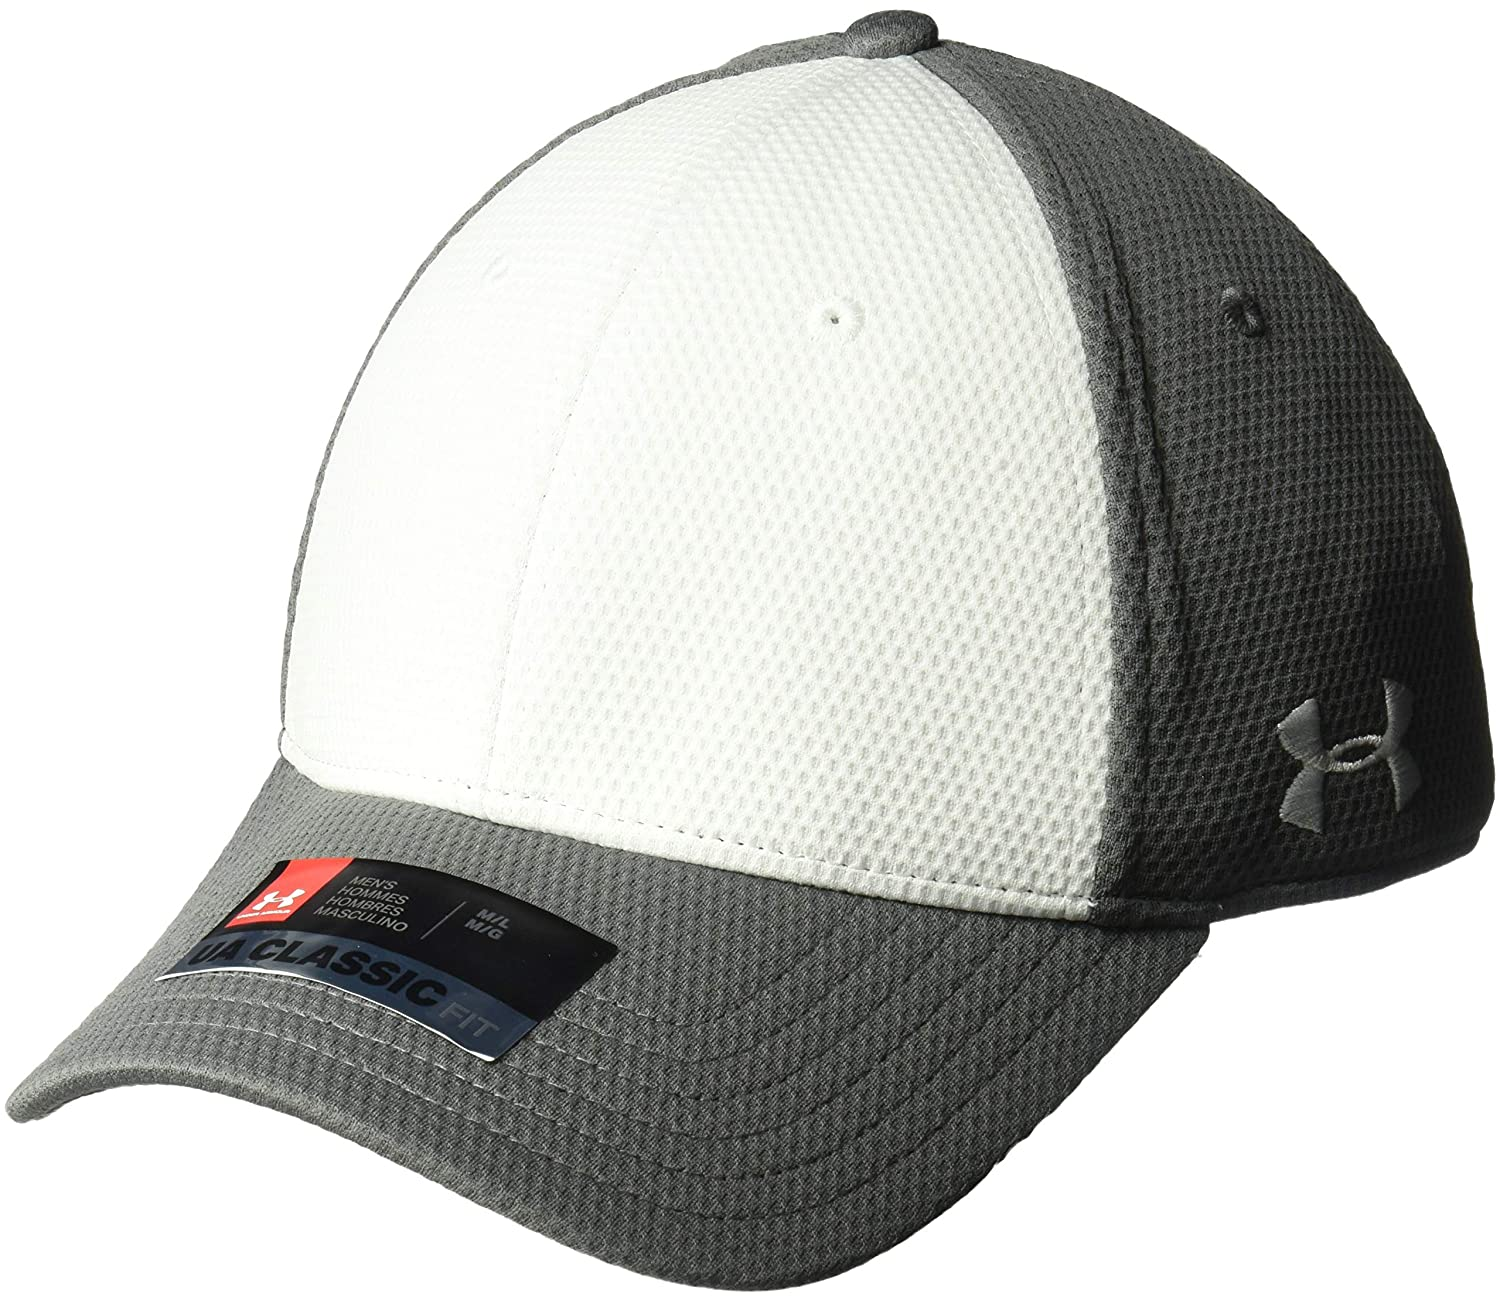 1b81c30e921 Amazon.com  Under Armour Men s Armour Color Blocked Stretch Fit Cap ...